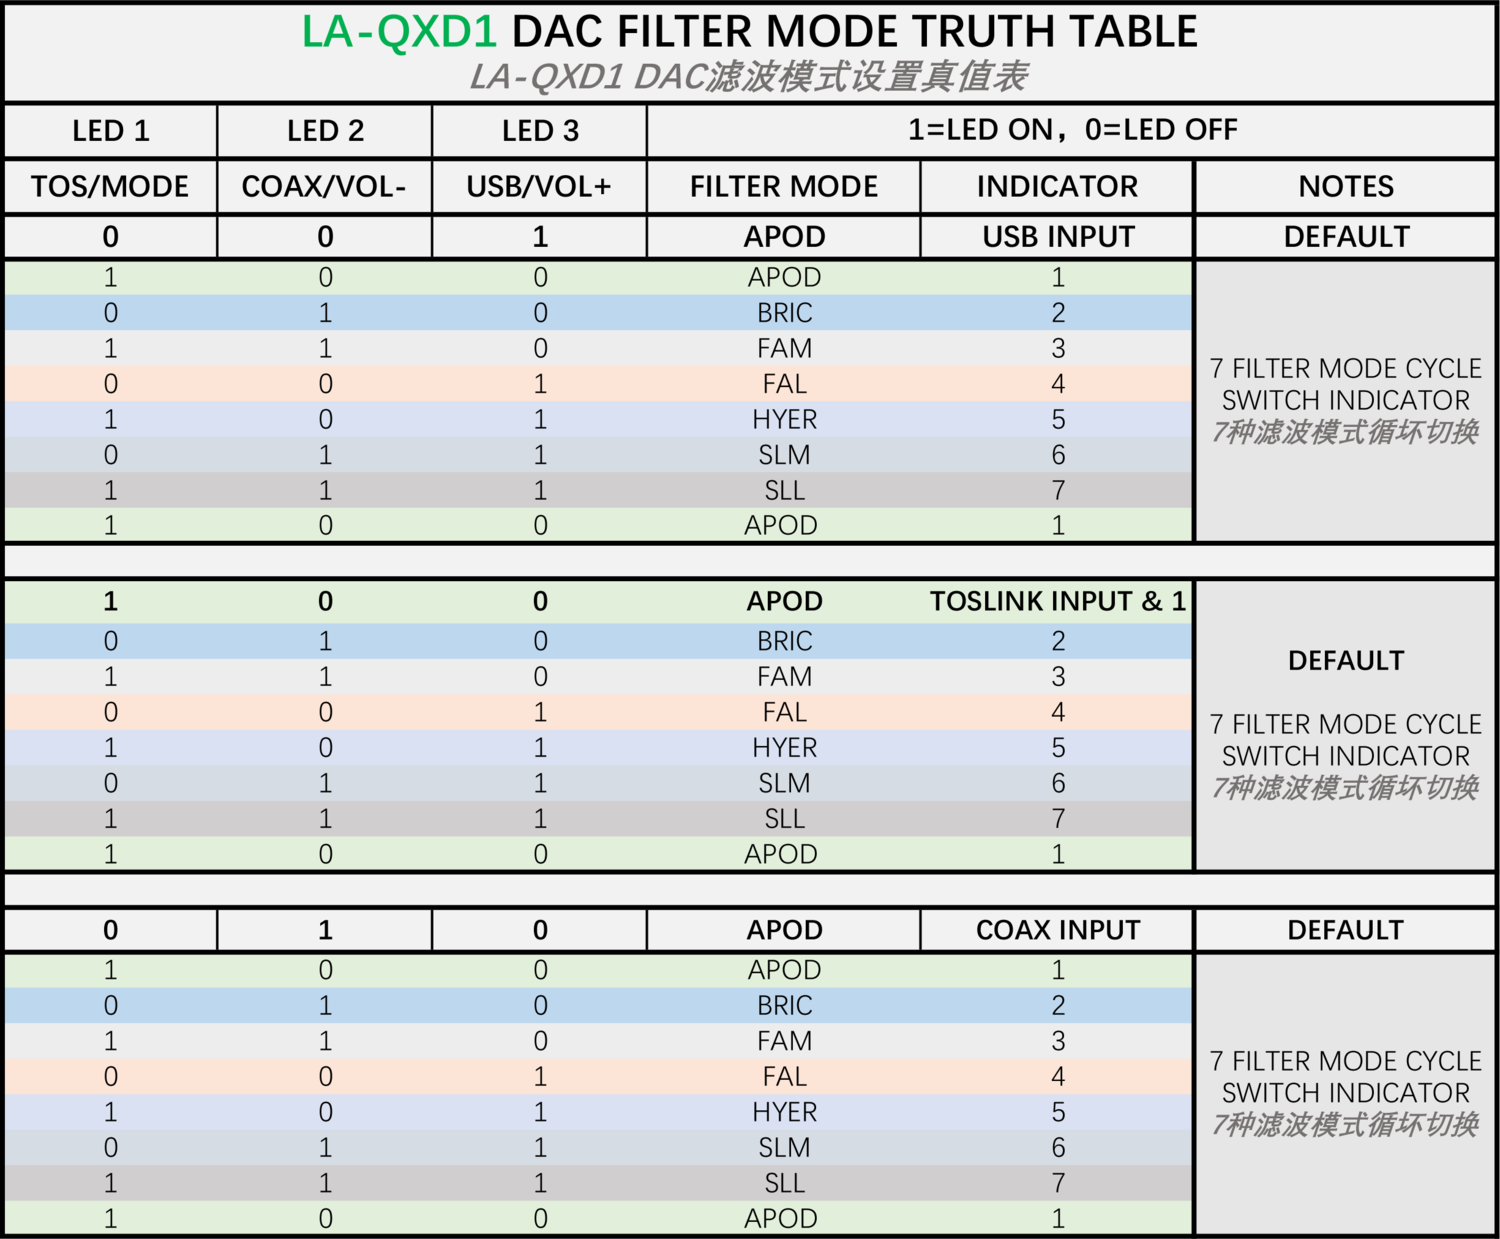 LA-QXD1 DAC FILTER MODE TRUTH TABLE.png